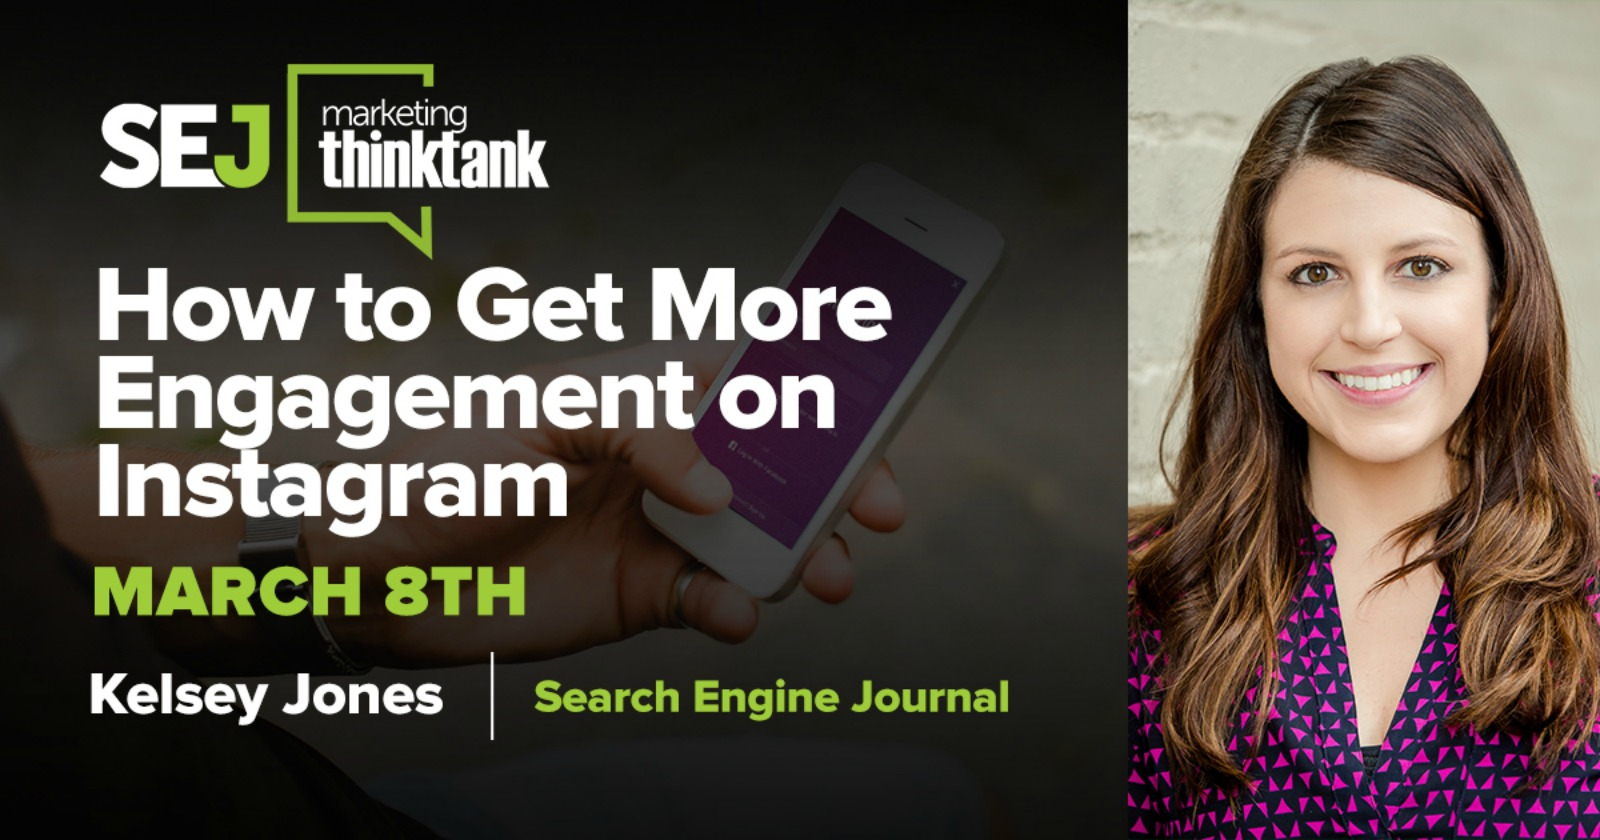 How to Get More Engagement on Instagram [Webinar] by @rinadianewrites